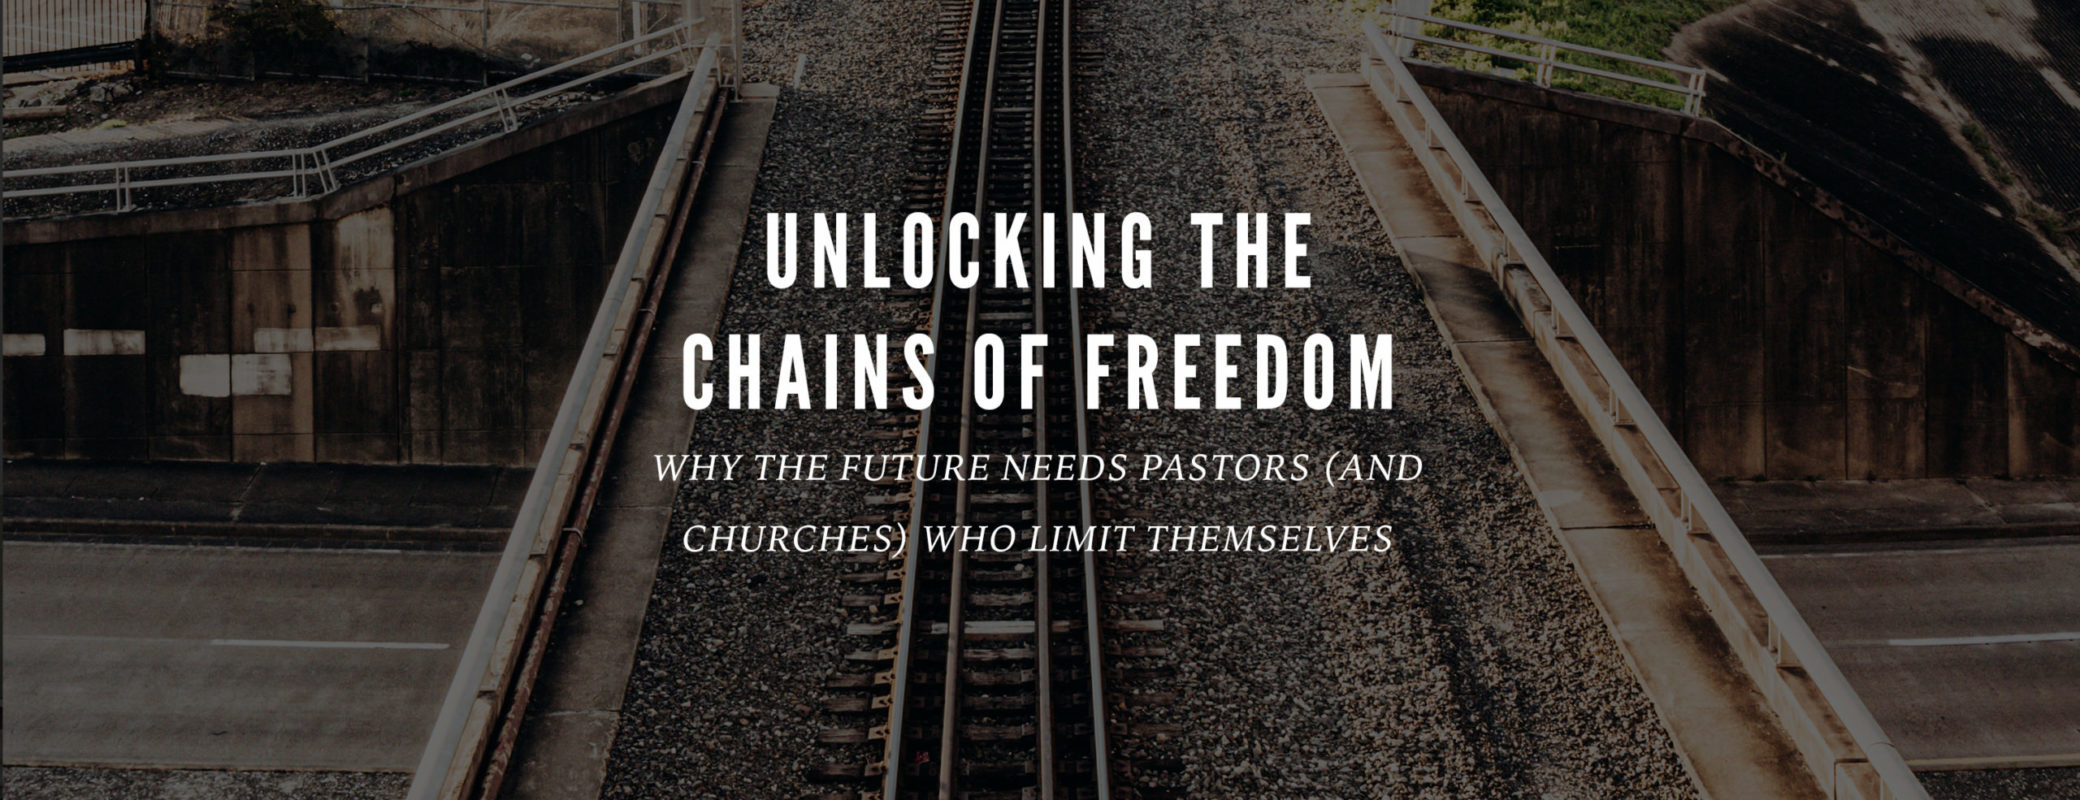 Unlocking The Chains Of Freedom